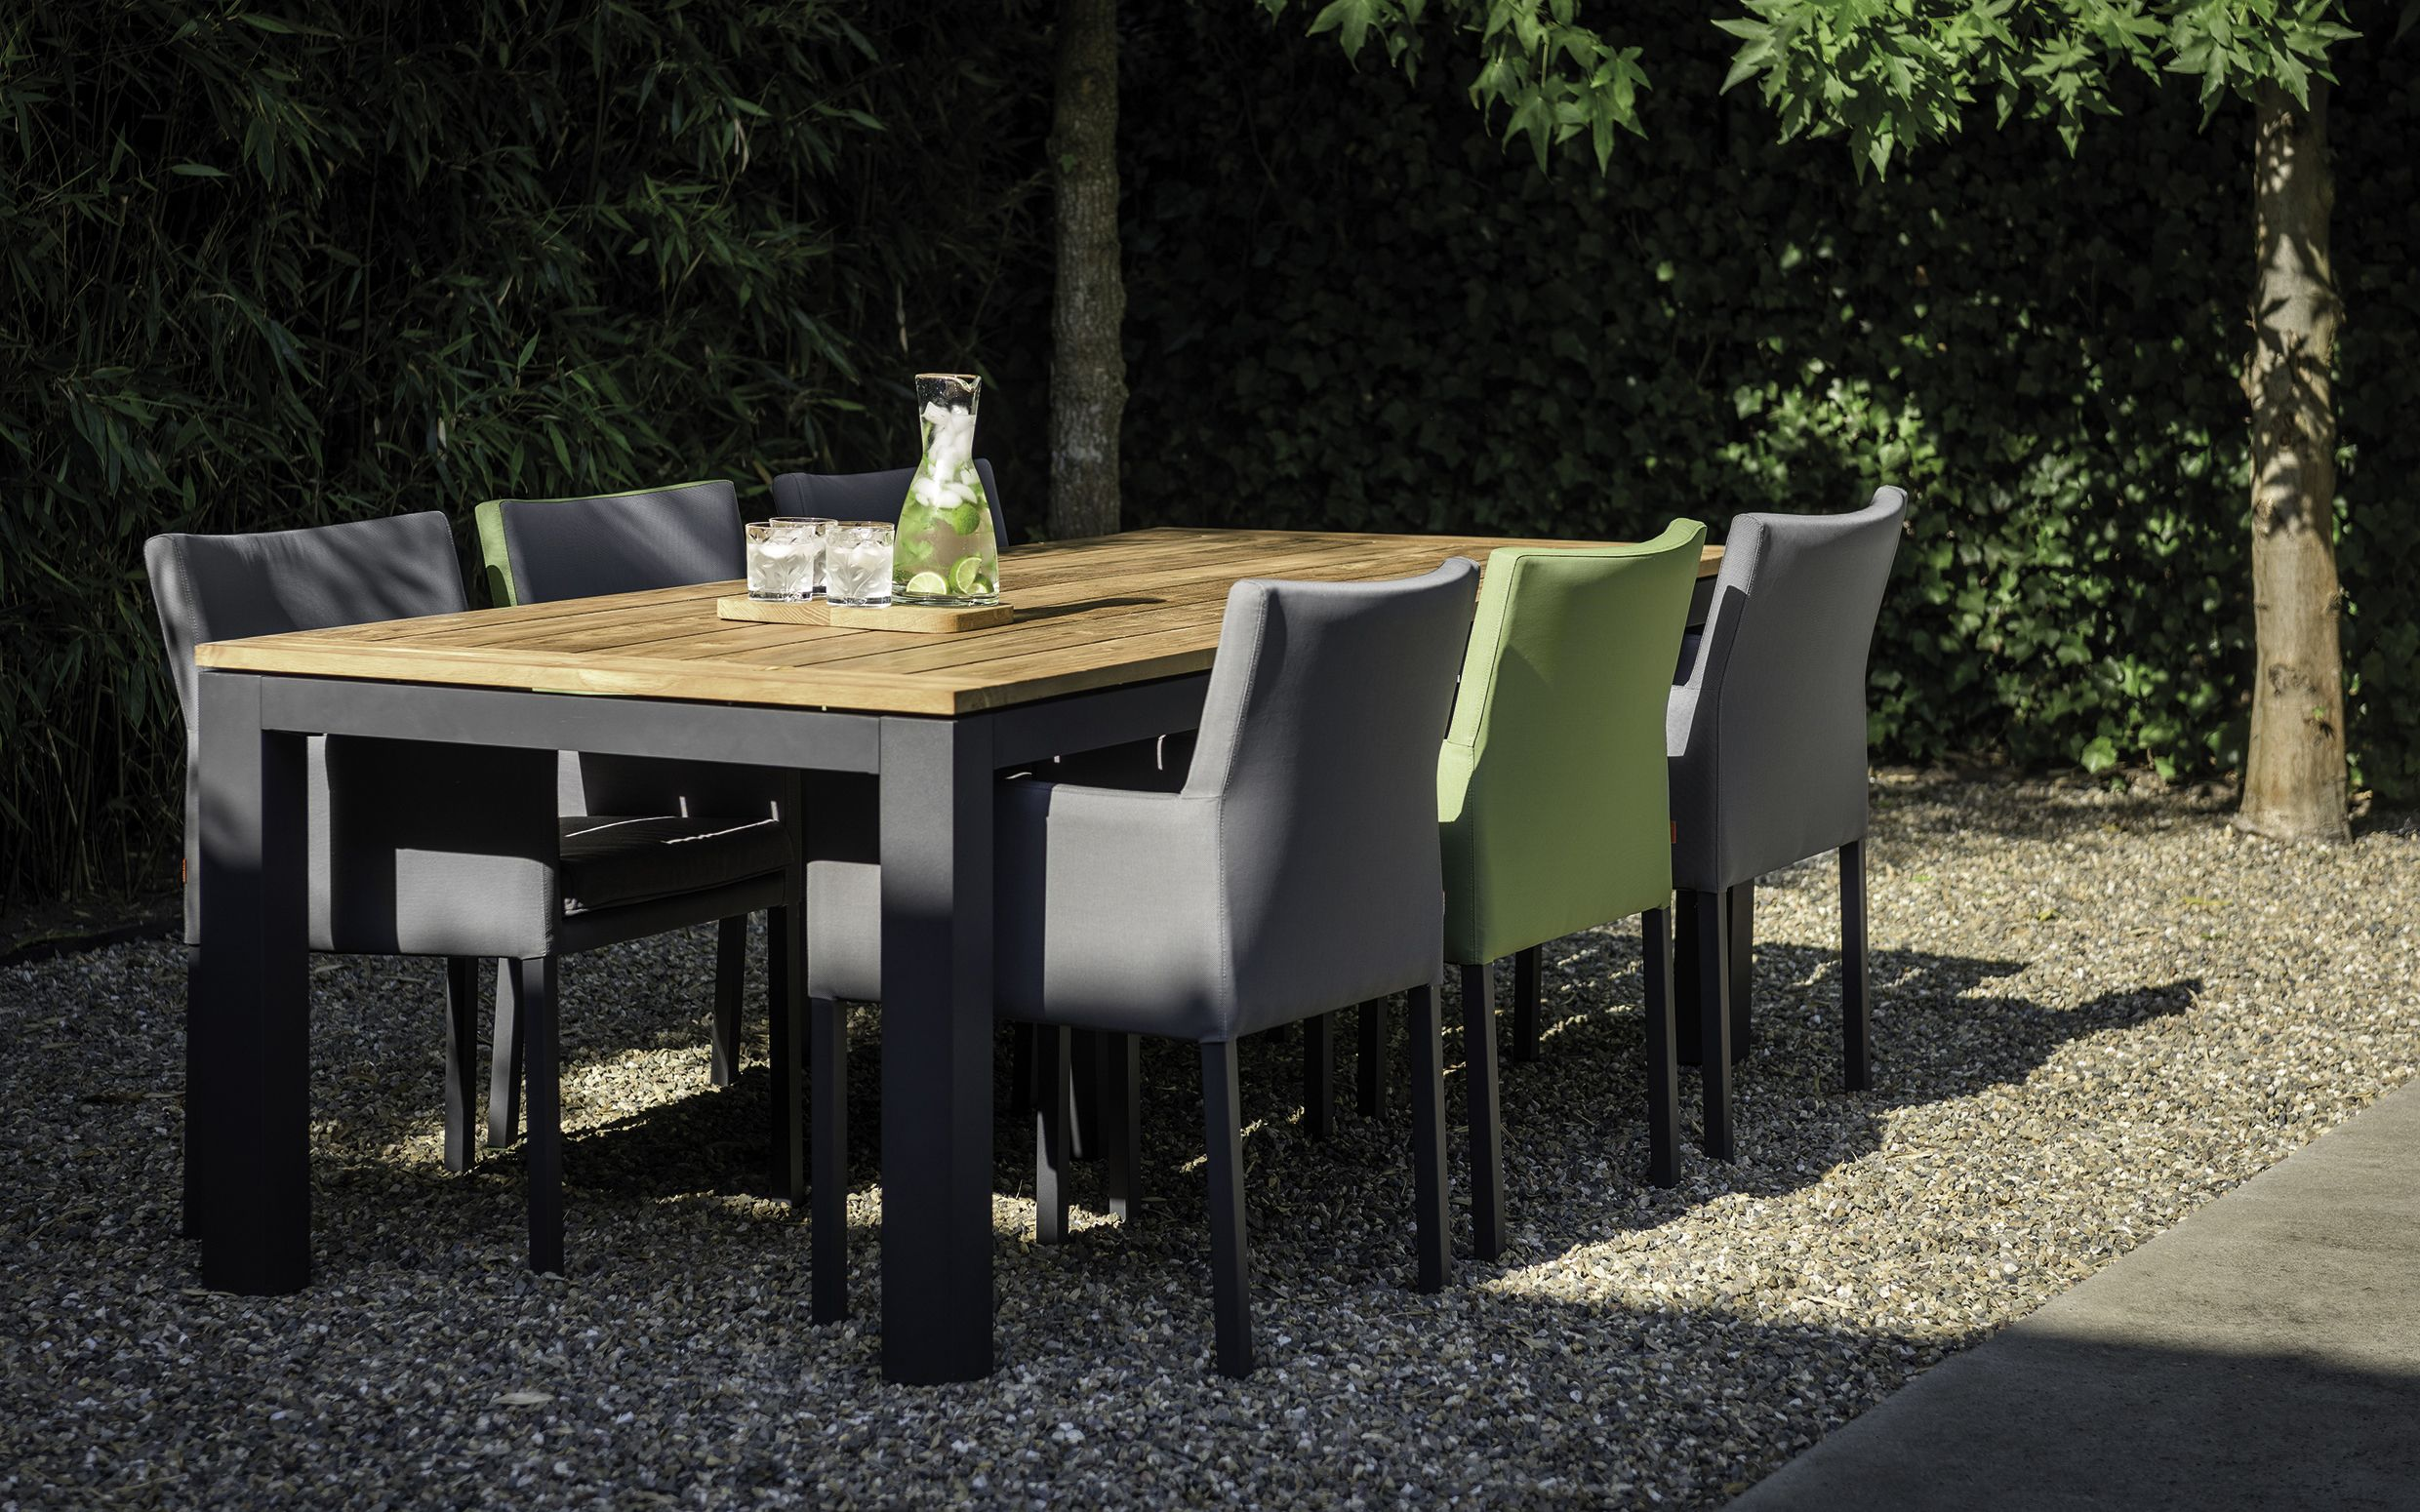 Good The Use Of High Quality Materials And Contemporary Design Make The SUNS  Antas Outdoor Dining Chair An Asset To Any Garden. Its Aluminium Frame,  Covered In ...